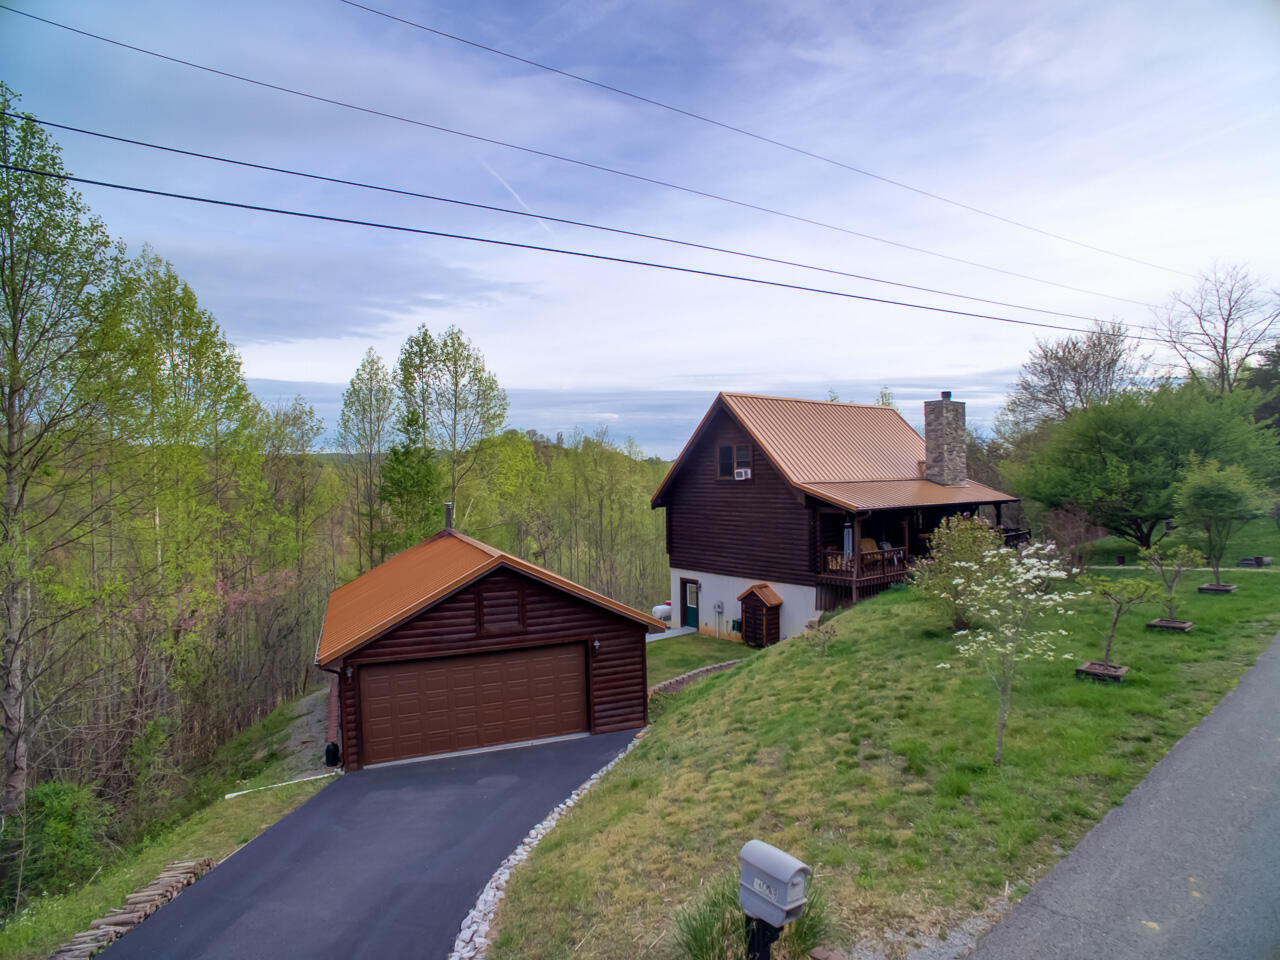 1603 Whistle Valley Rd: